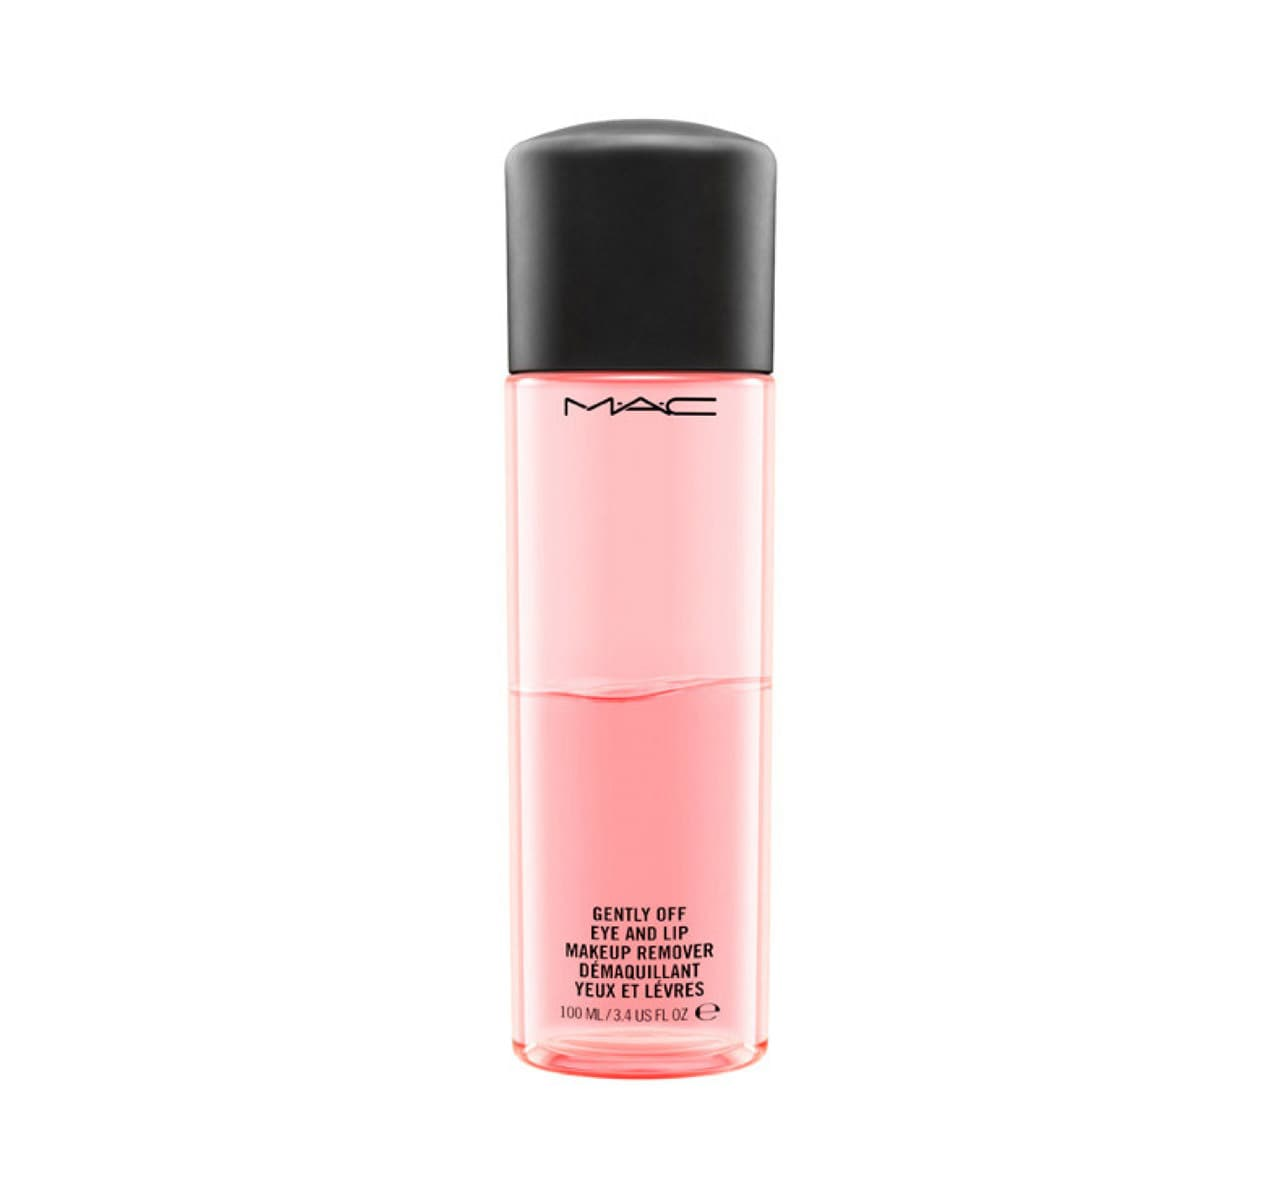 Gently Off Eye and Lip Makeup Remover | MAC Cosmetics - Official Site